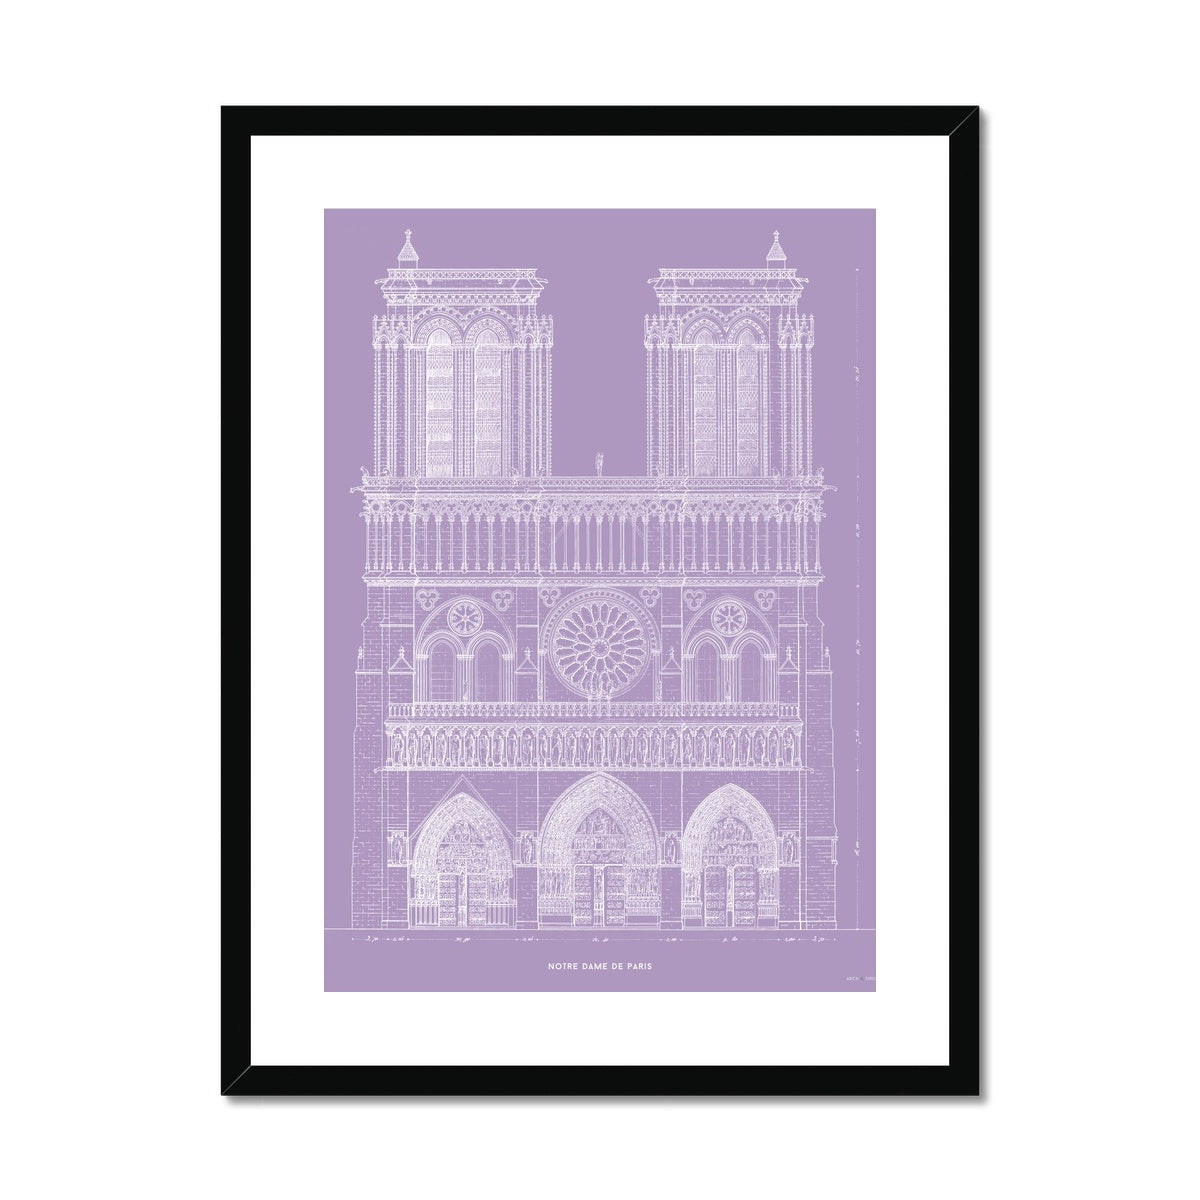 Notre Dame de Paris - Principal Elevation - Lavender -  Framed & Mounted Print